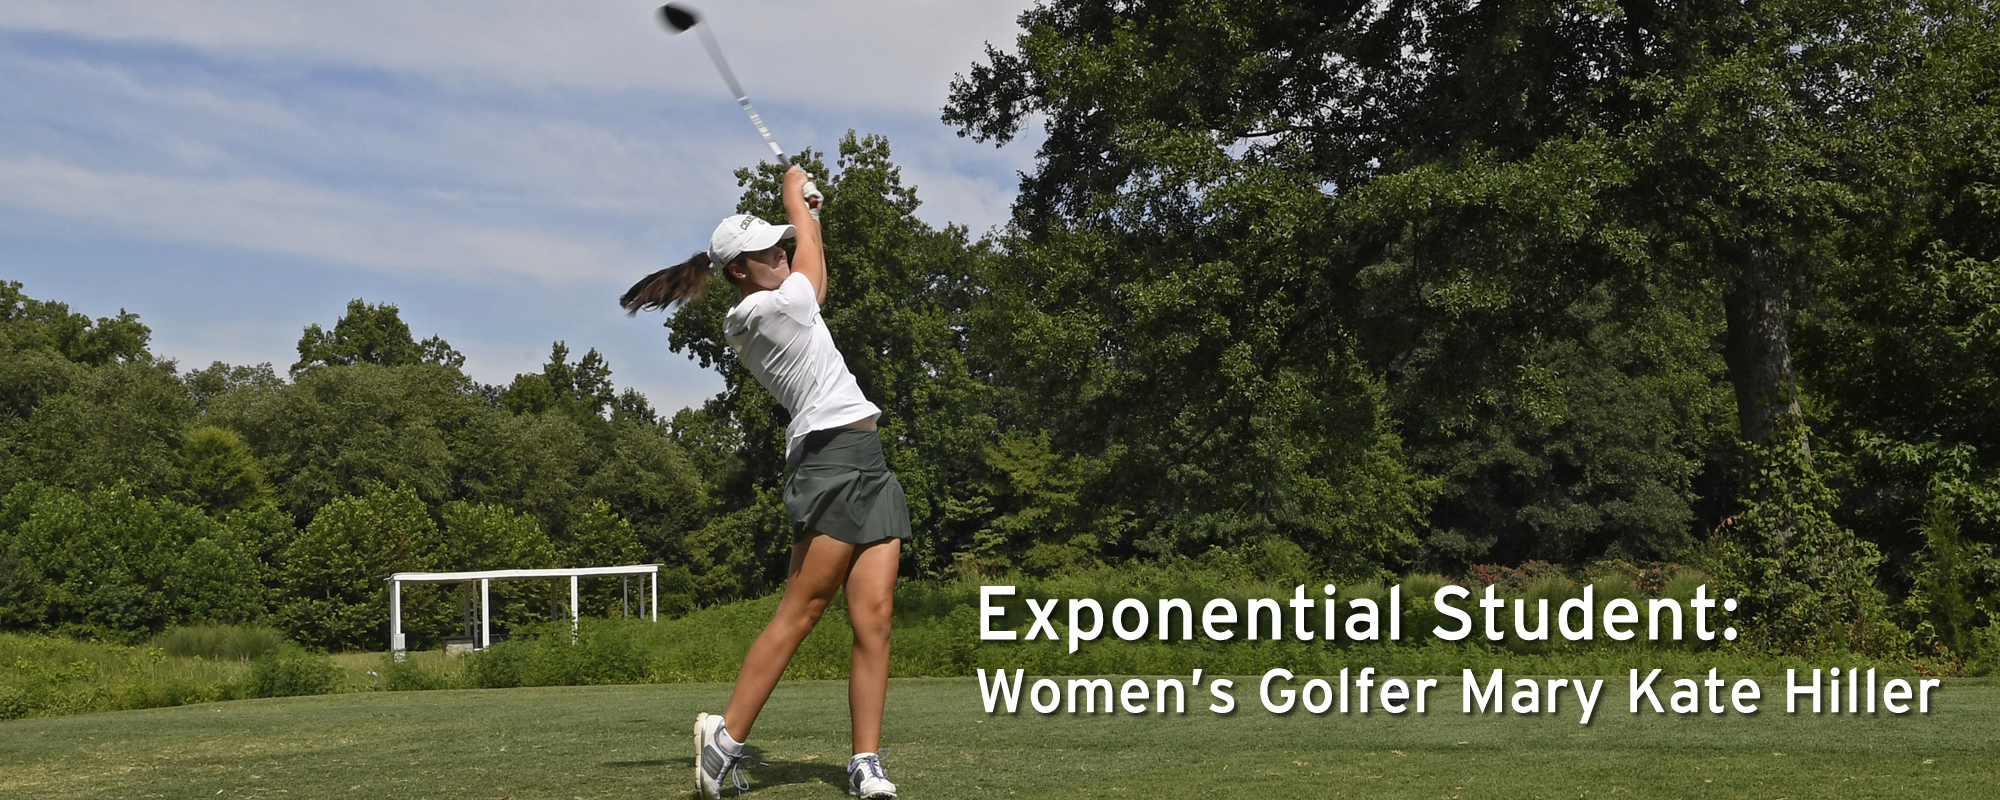 Exponential Student: Women's Golfer Mary Kate Hiller